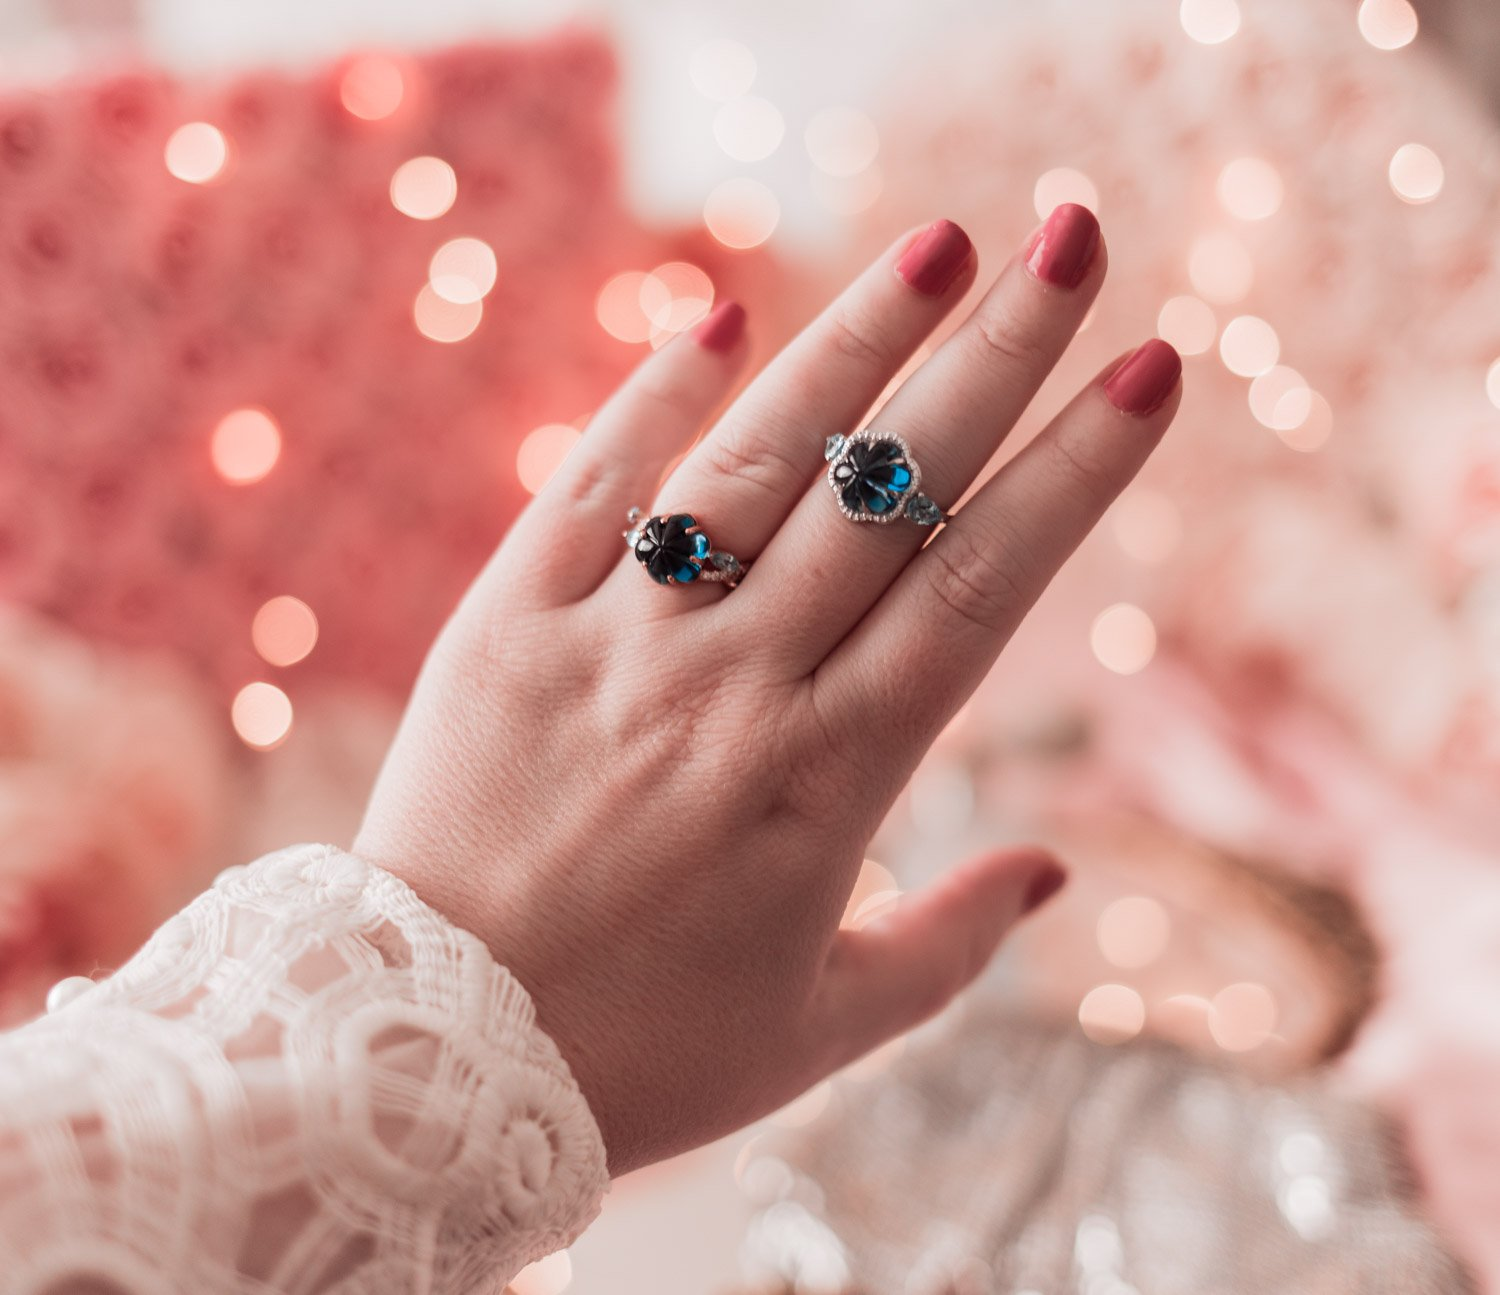 Fashion blogger Elizabeth Hugen shares two floral rings from the Angara Artisinal Collection